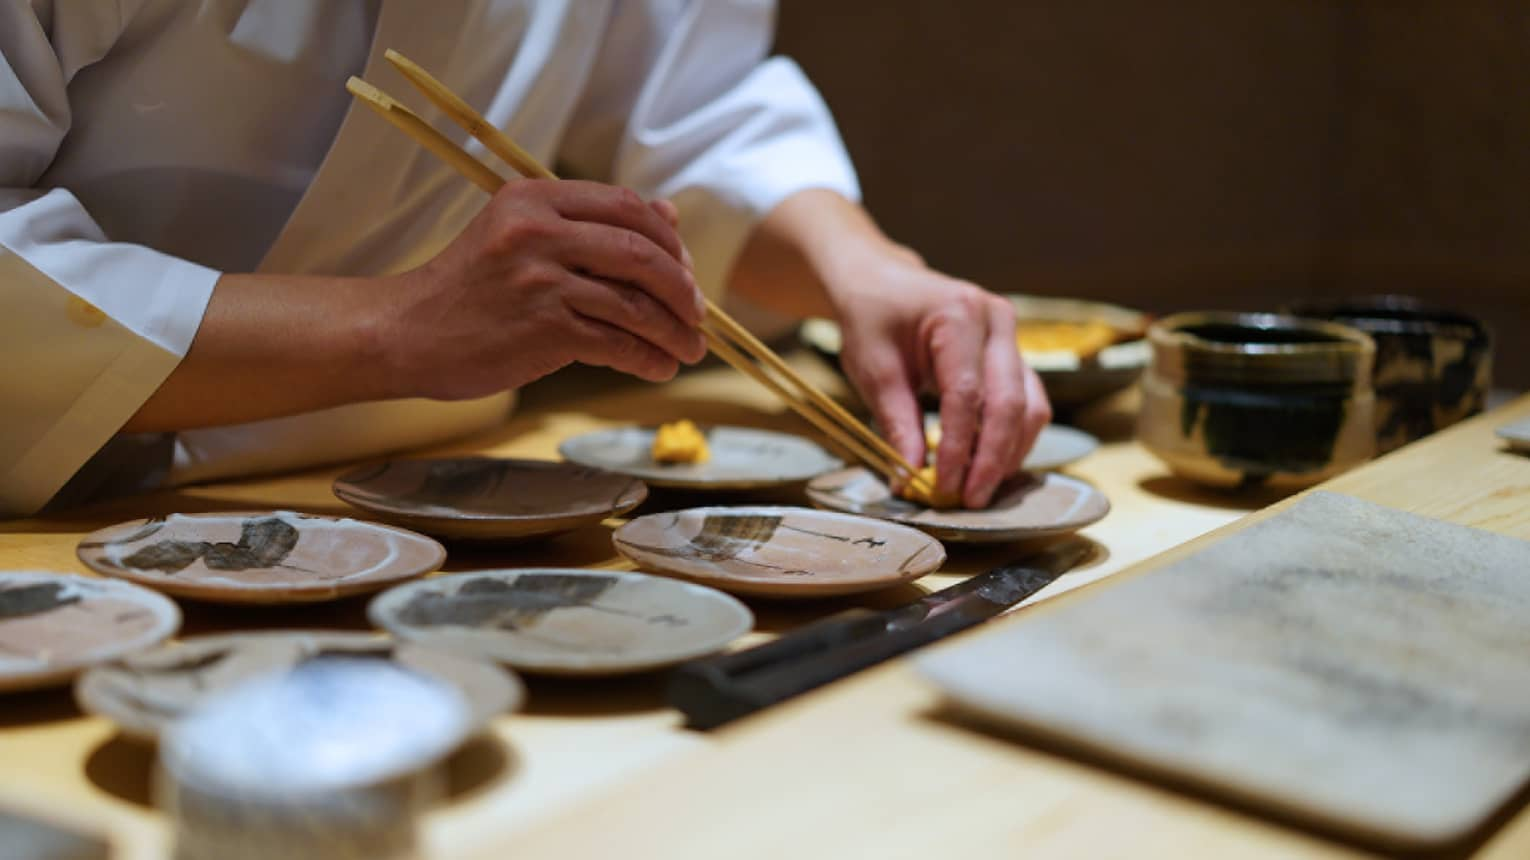 Close up of a chef using chopsticks to place a Food detail on a ceramic plate